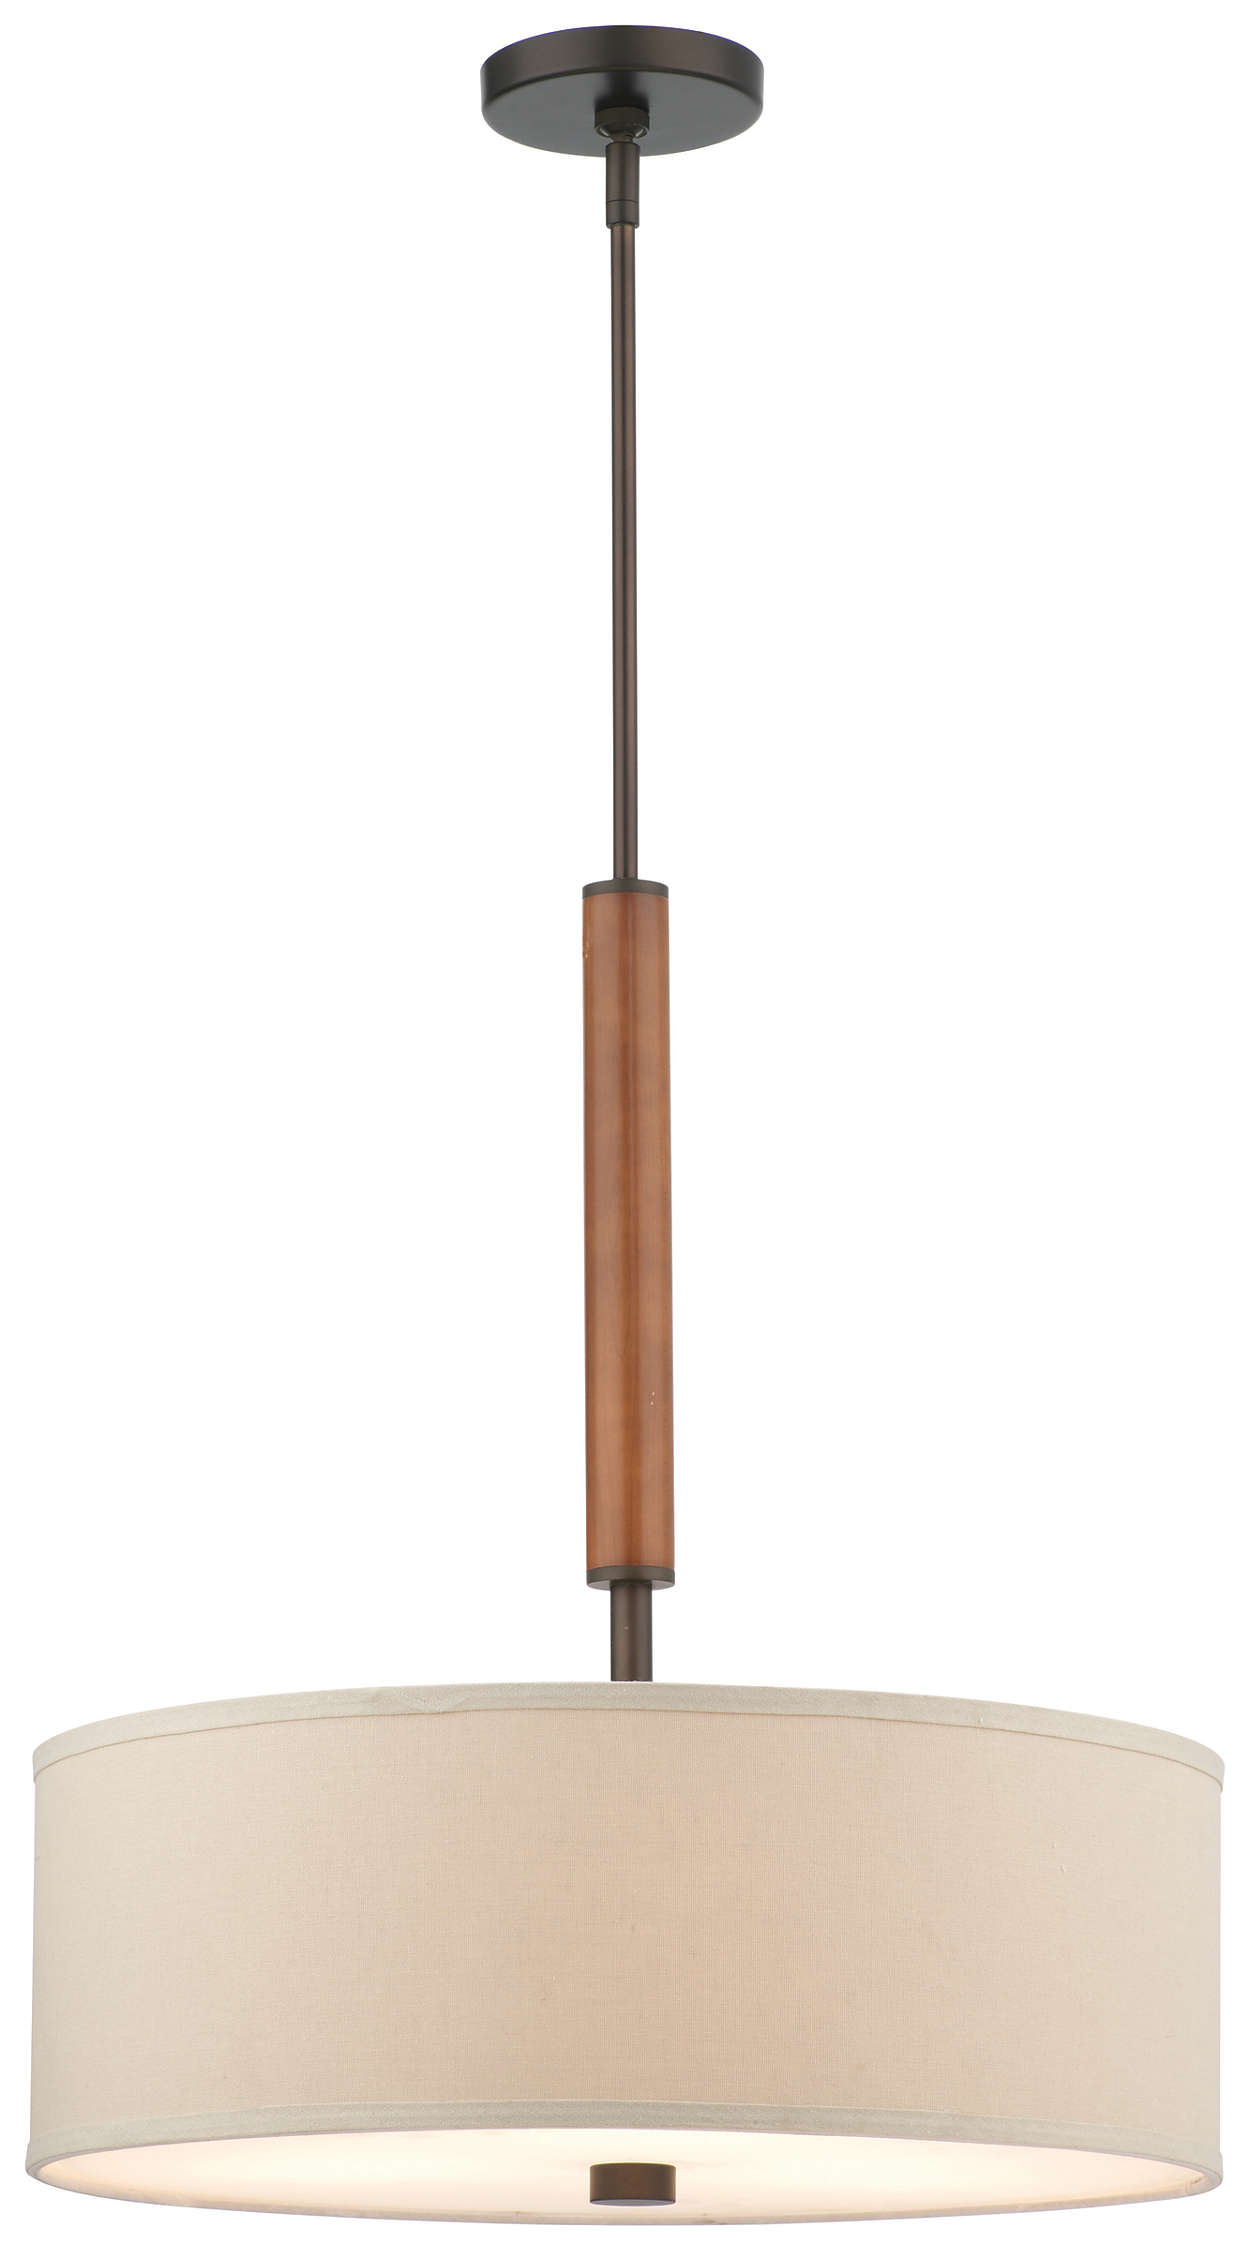 Embarcadero 2-light Pendant, Sorrel Bronze finish